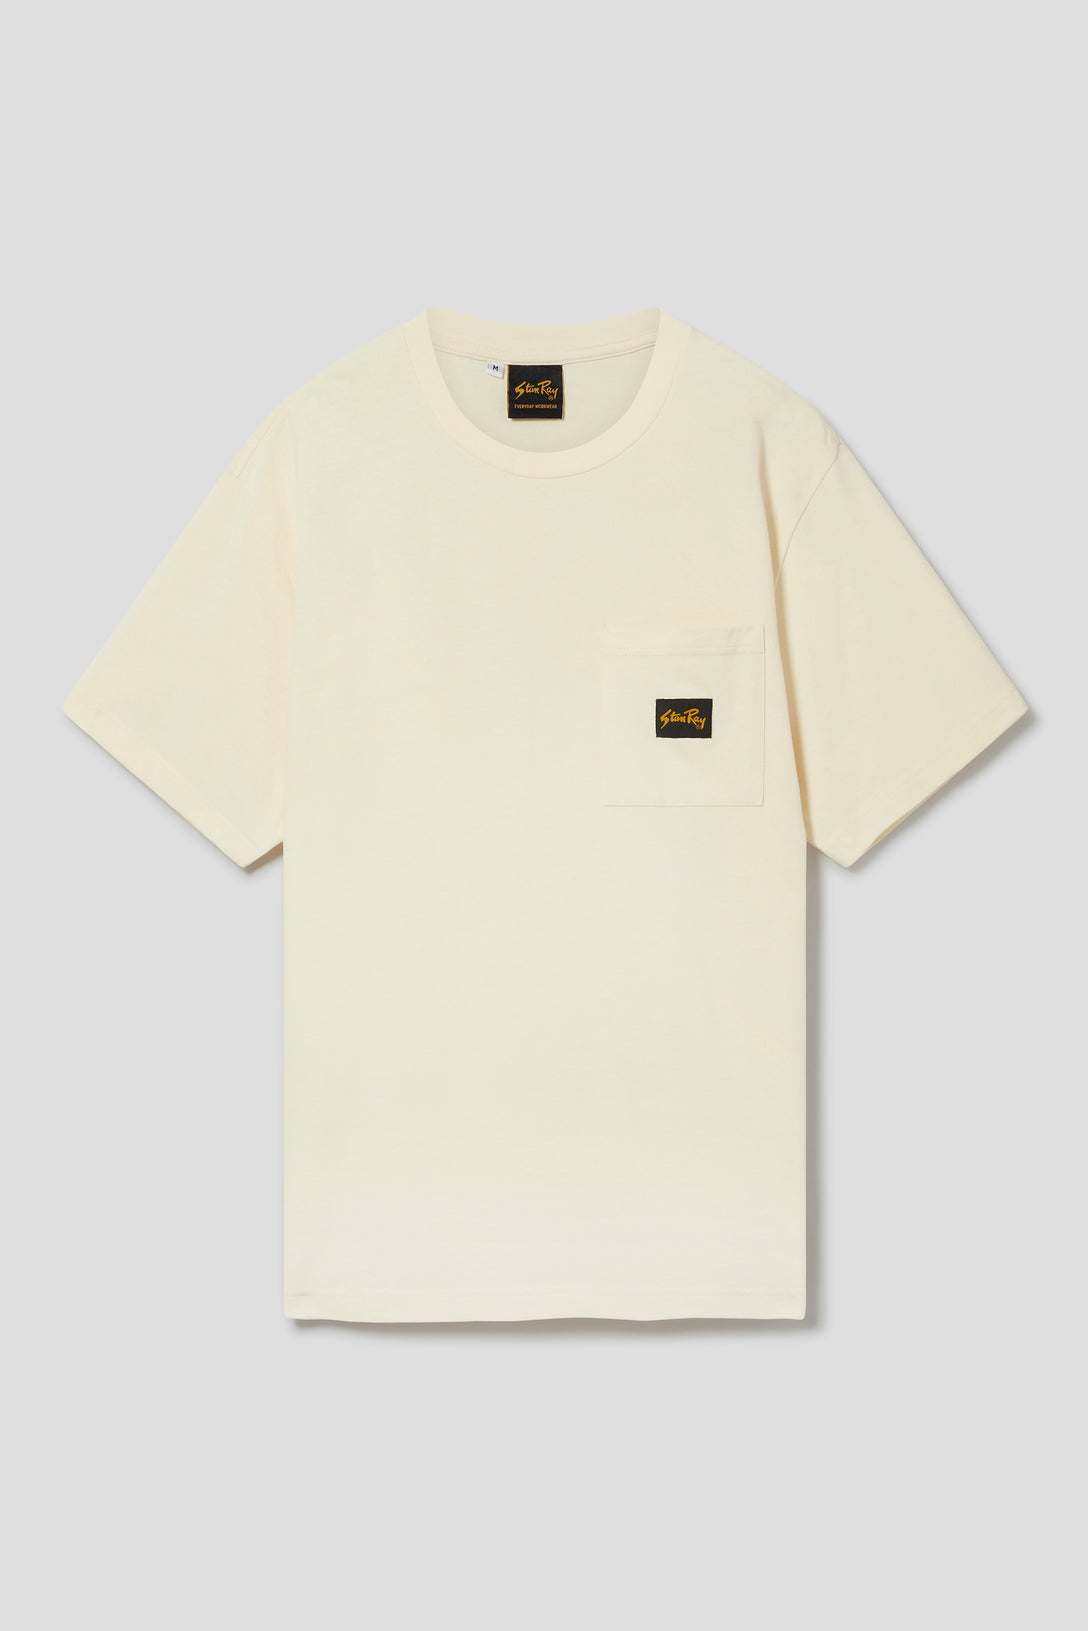 Patch Pocket Tee (Natural)